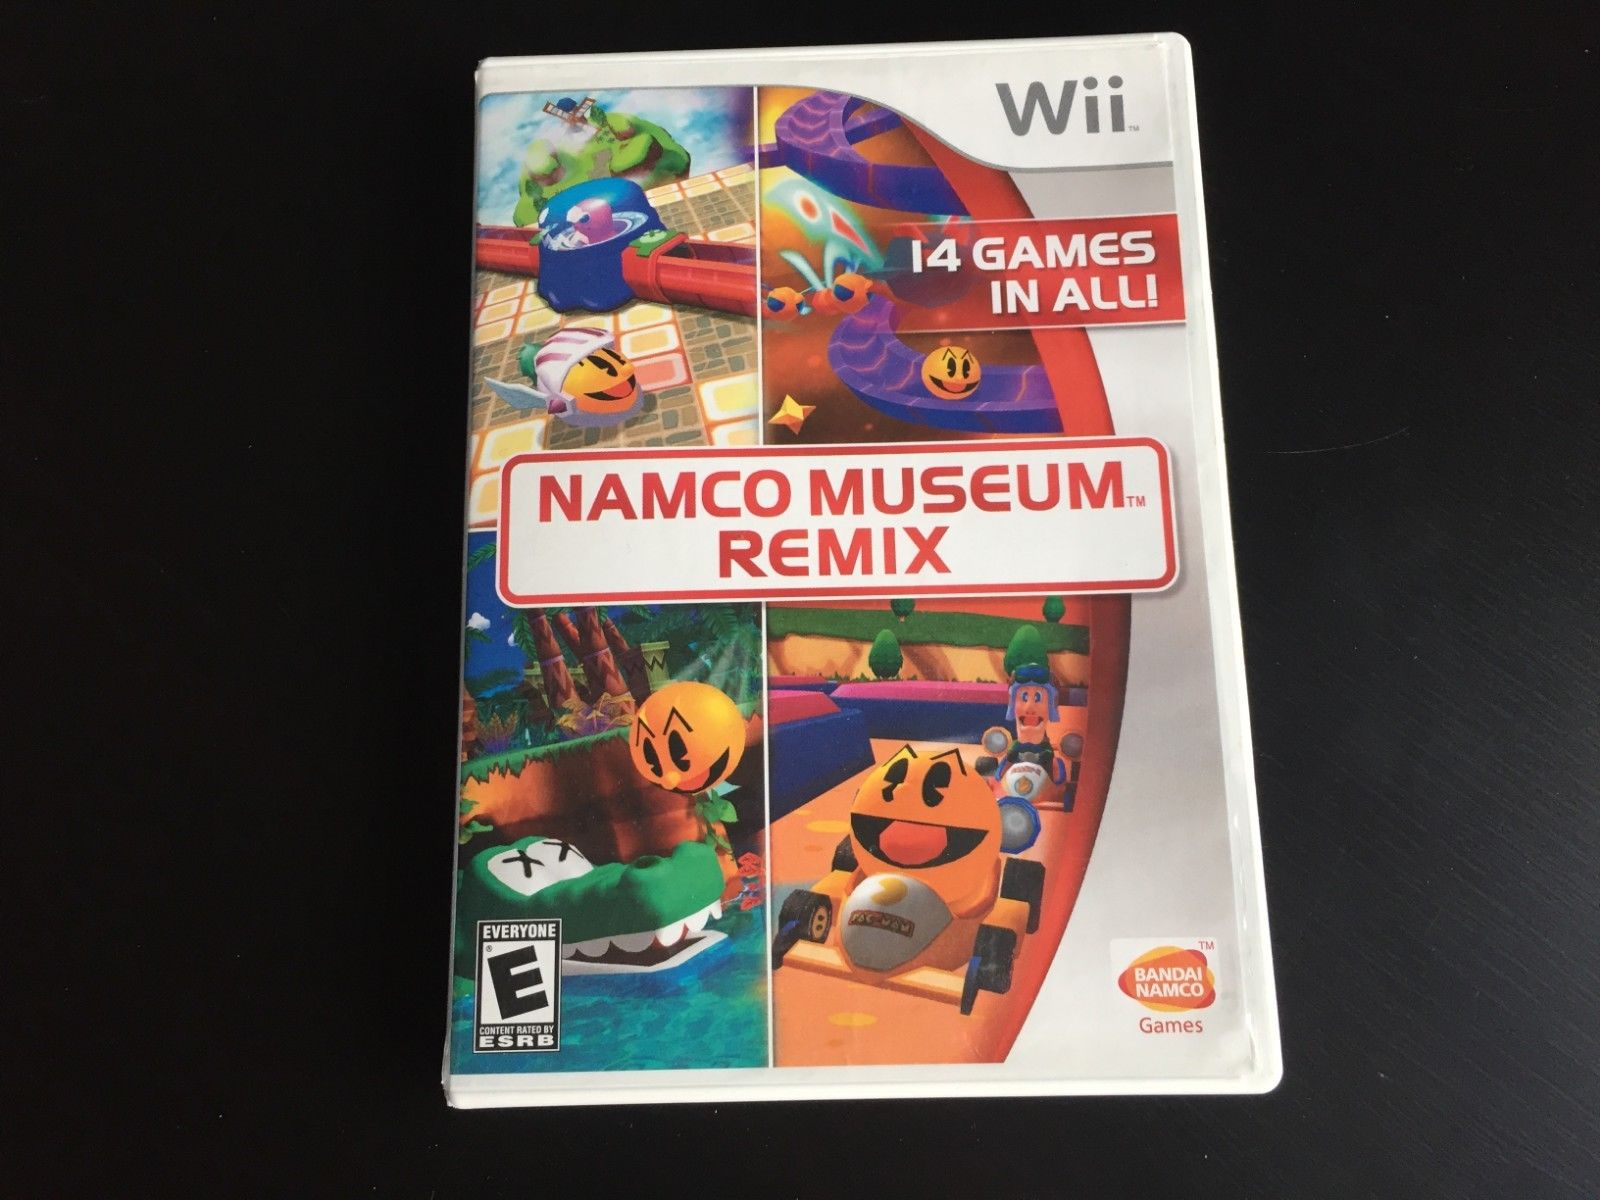 Namco Museum Remix (Nintendo Wii) COMPLETE 9 Games in All on the Disc